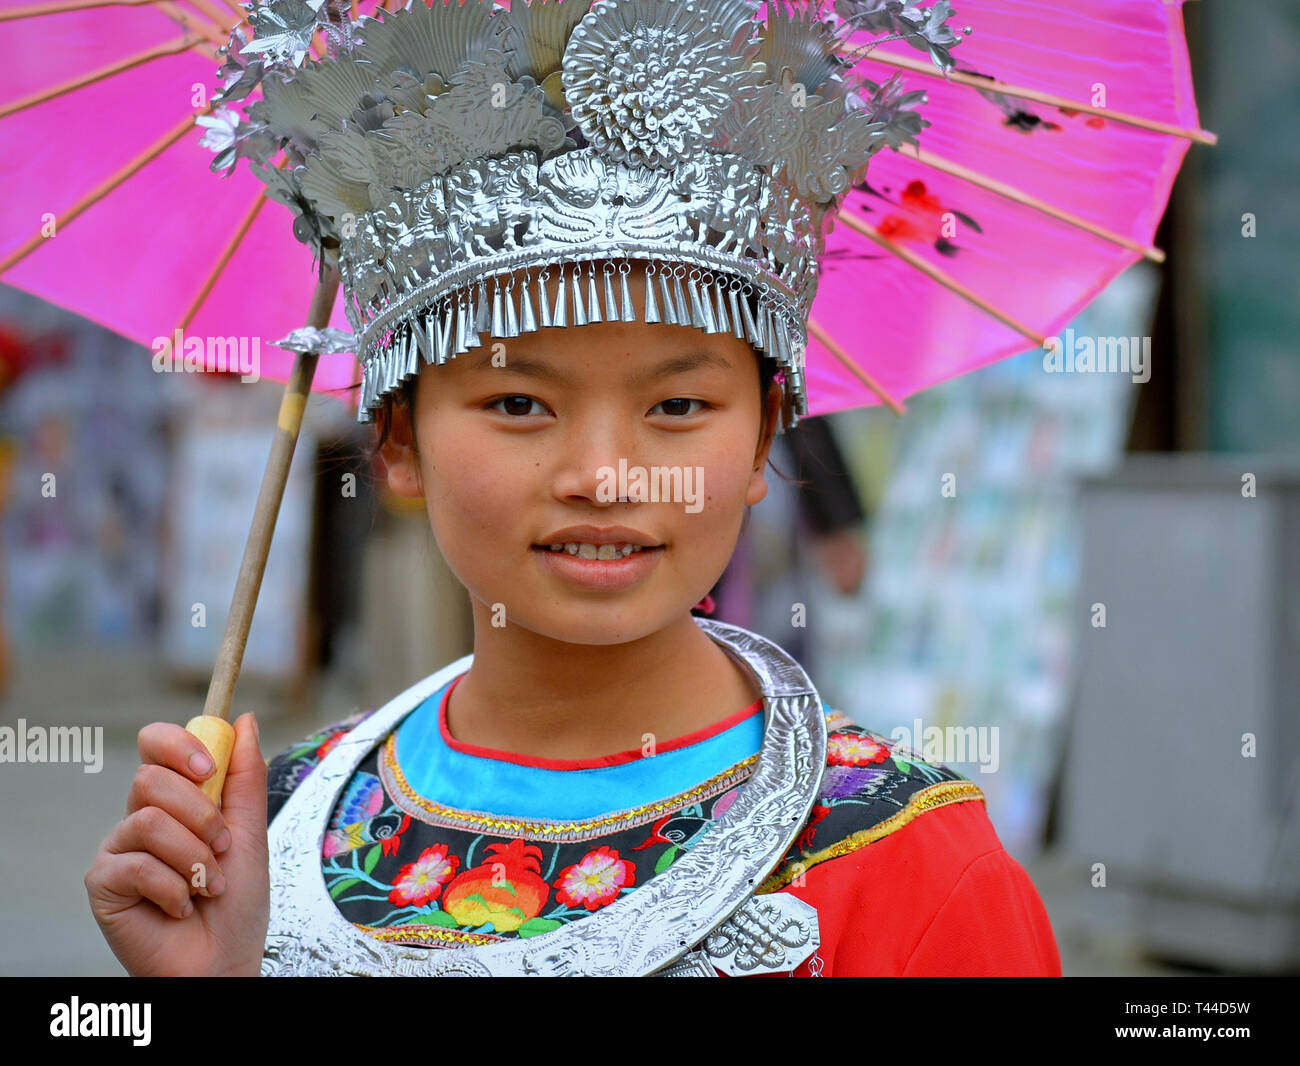 Pretty Chinese pre-teen girl with a pink paper parasol wears a traditional Miao headdress with silver accessories and smiles for the camera. - Stock Image